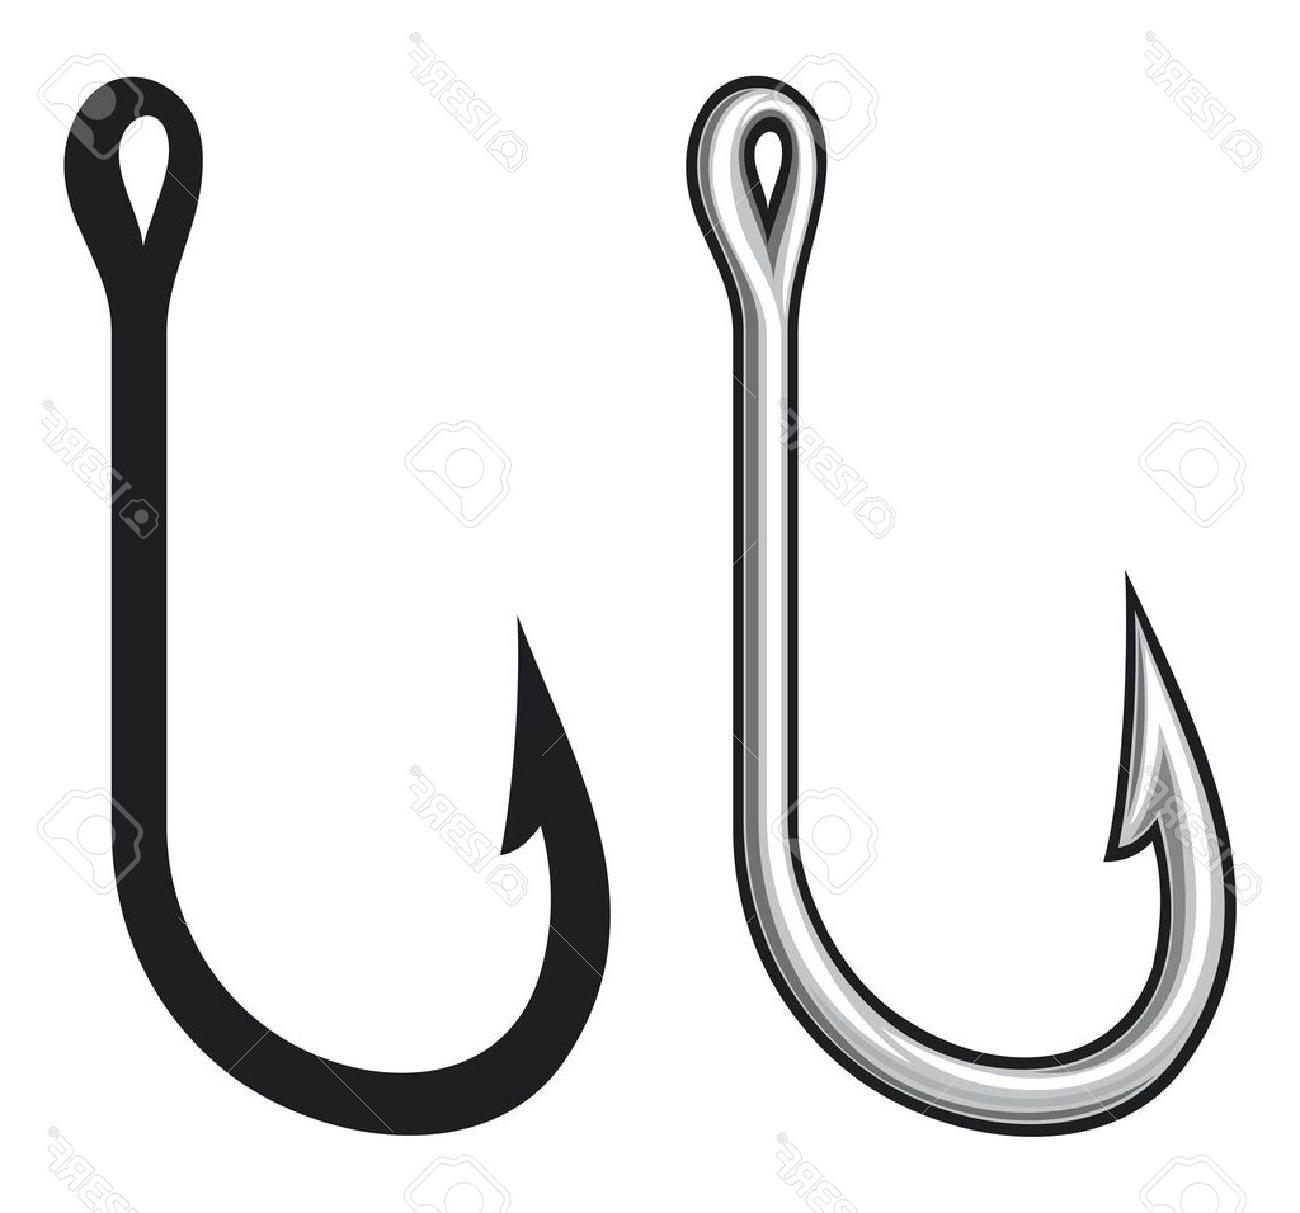 1300x1213 Best J Fishing Hook Vector Pictures Free Vector Art, Images